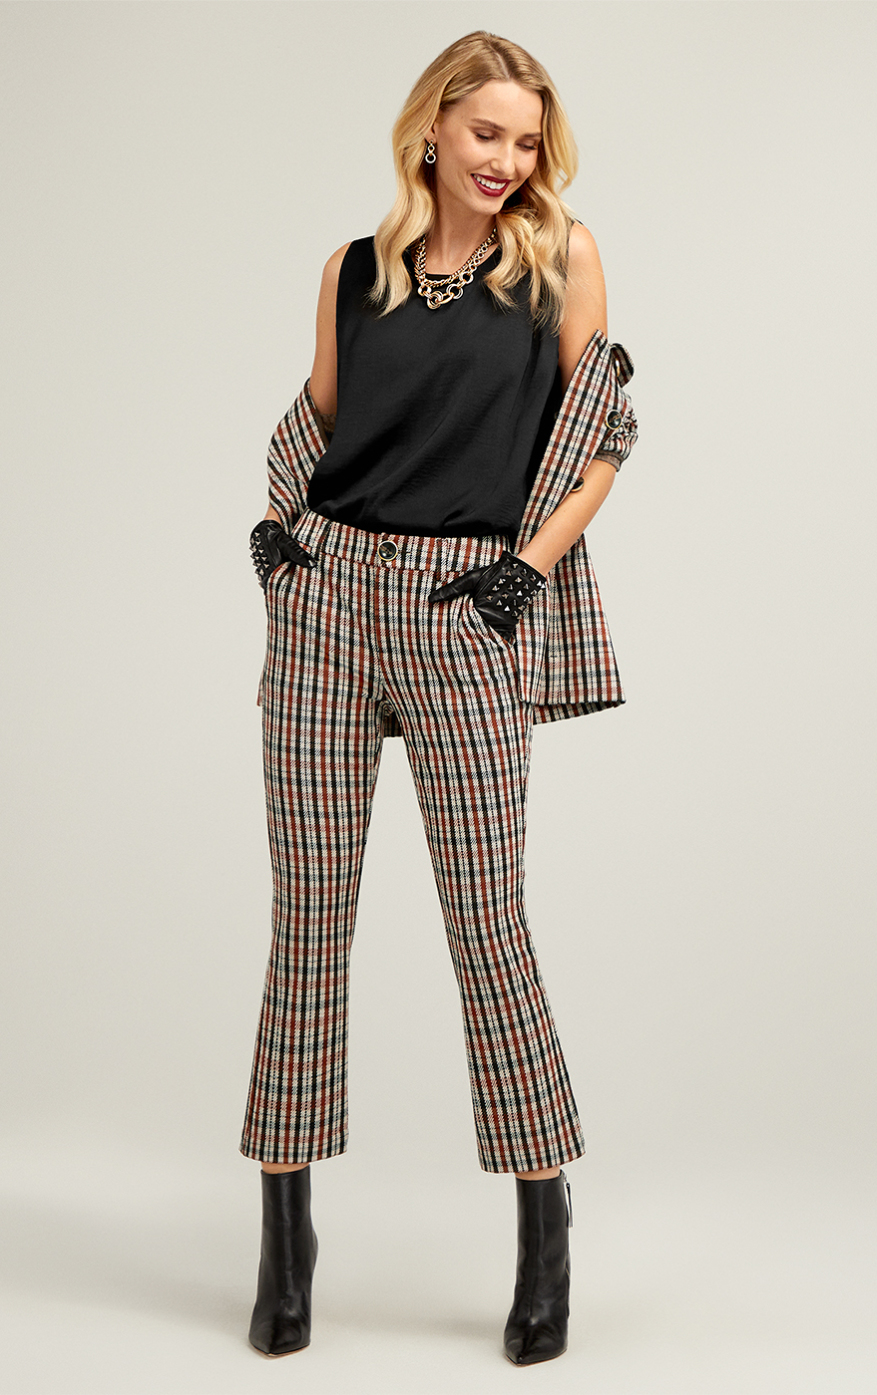 Jazzy Jacket in Toffee Plaid, Jazzy Kick Flare in Toffee Plaid, Complete Top in Black